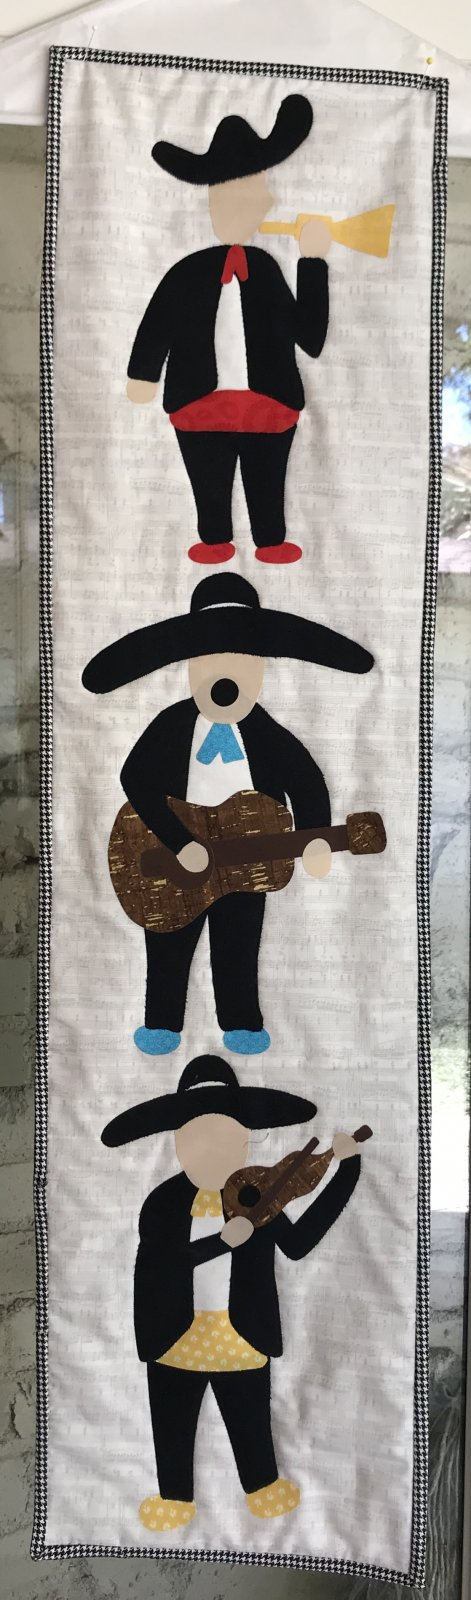 Mariachis Row by Row 2018 - Pattern